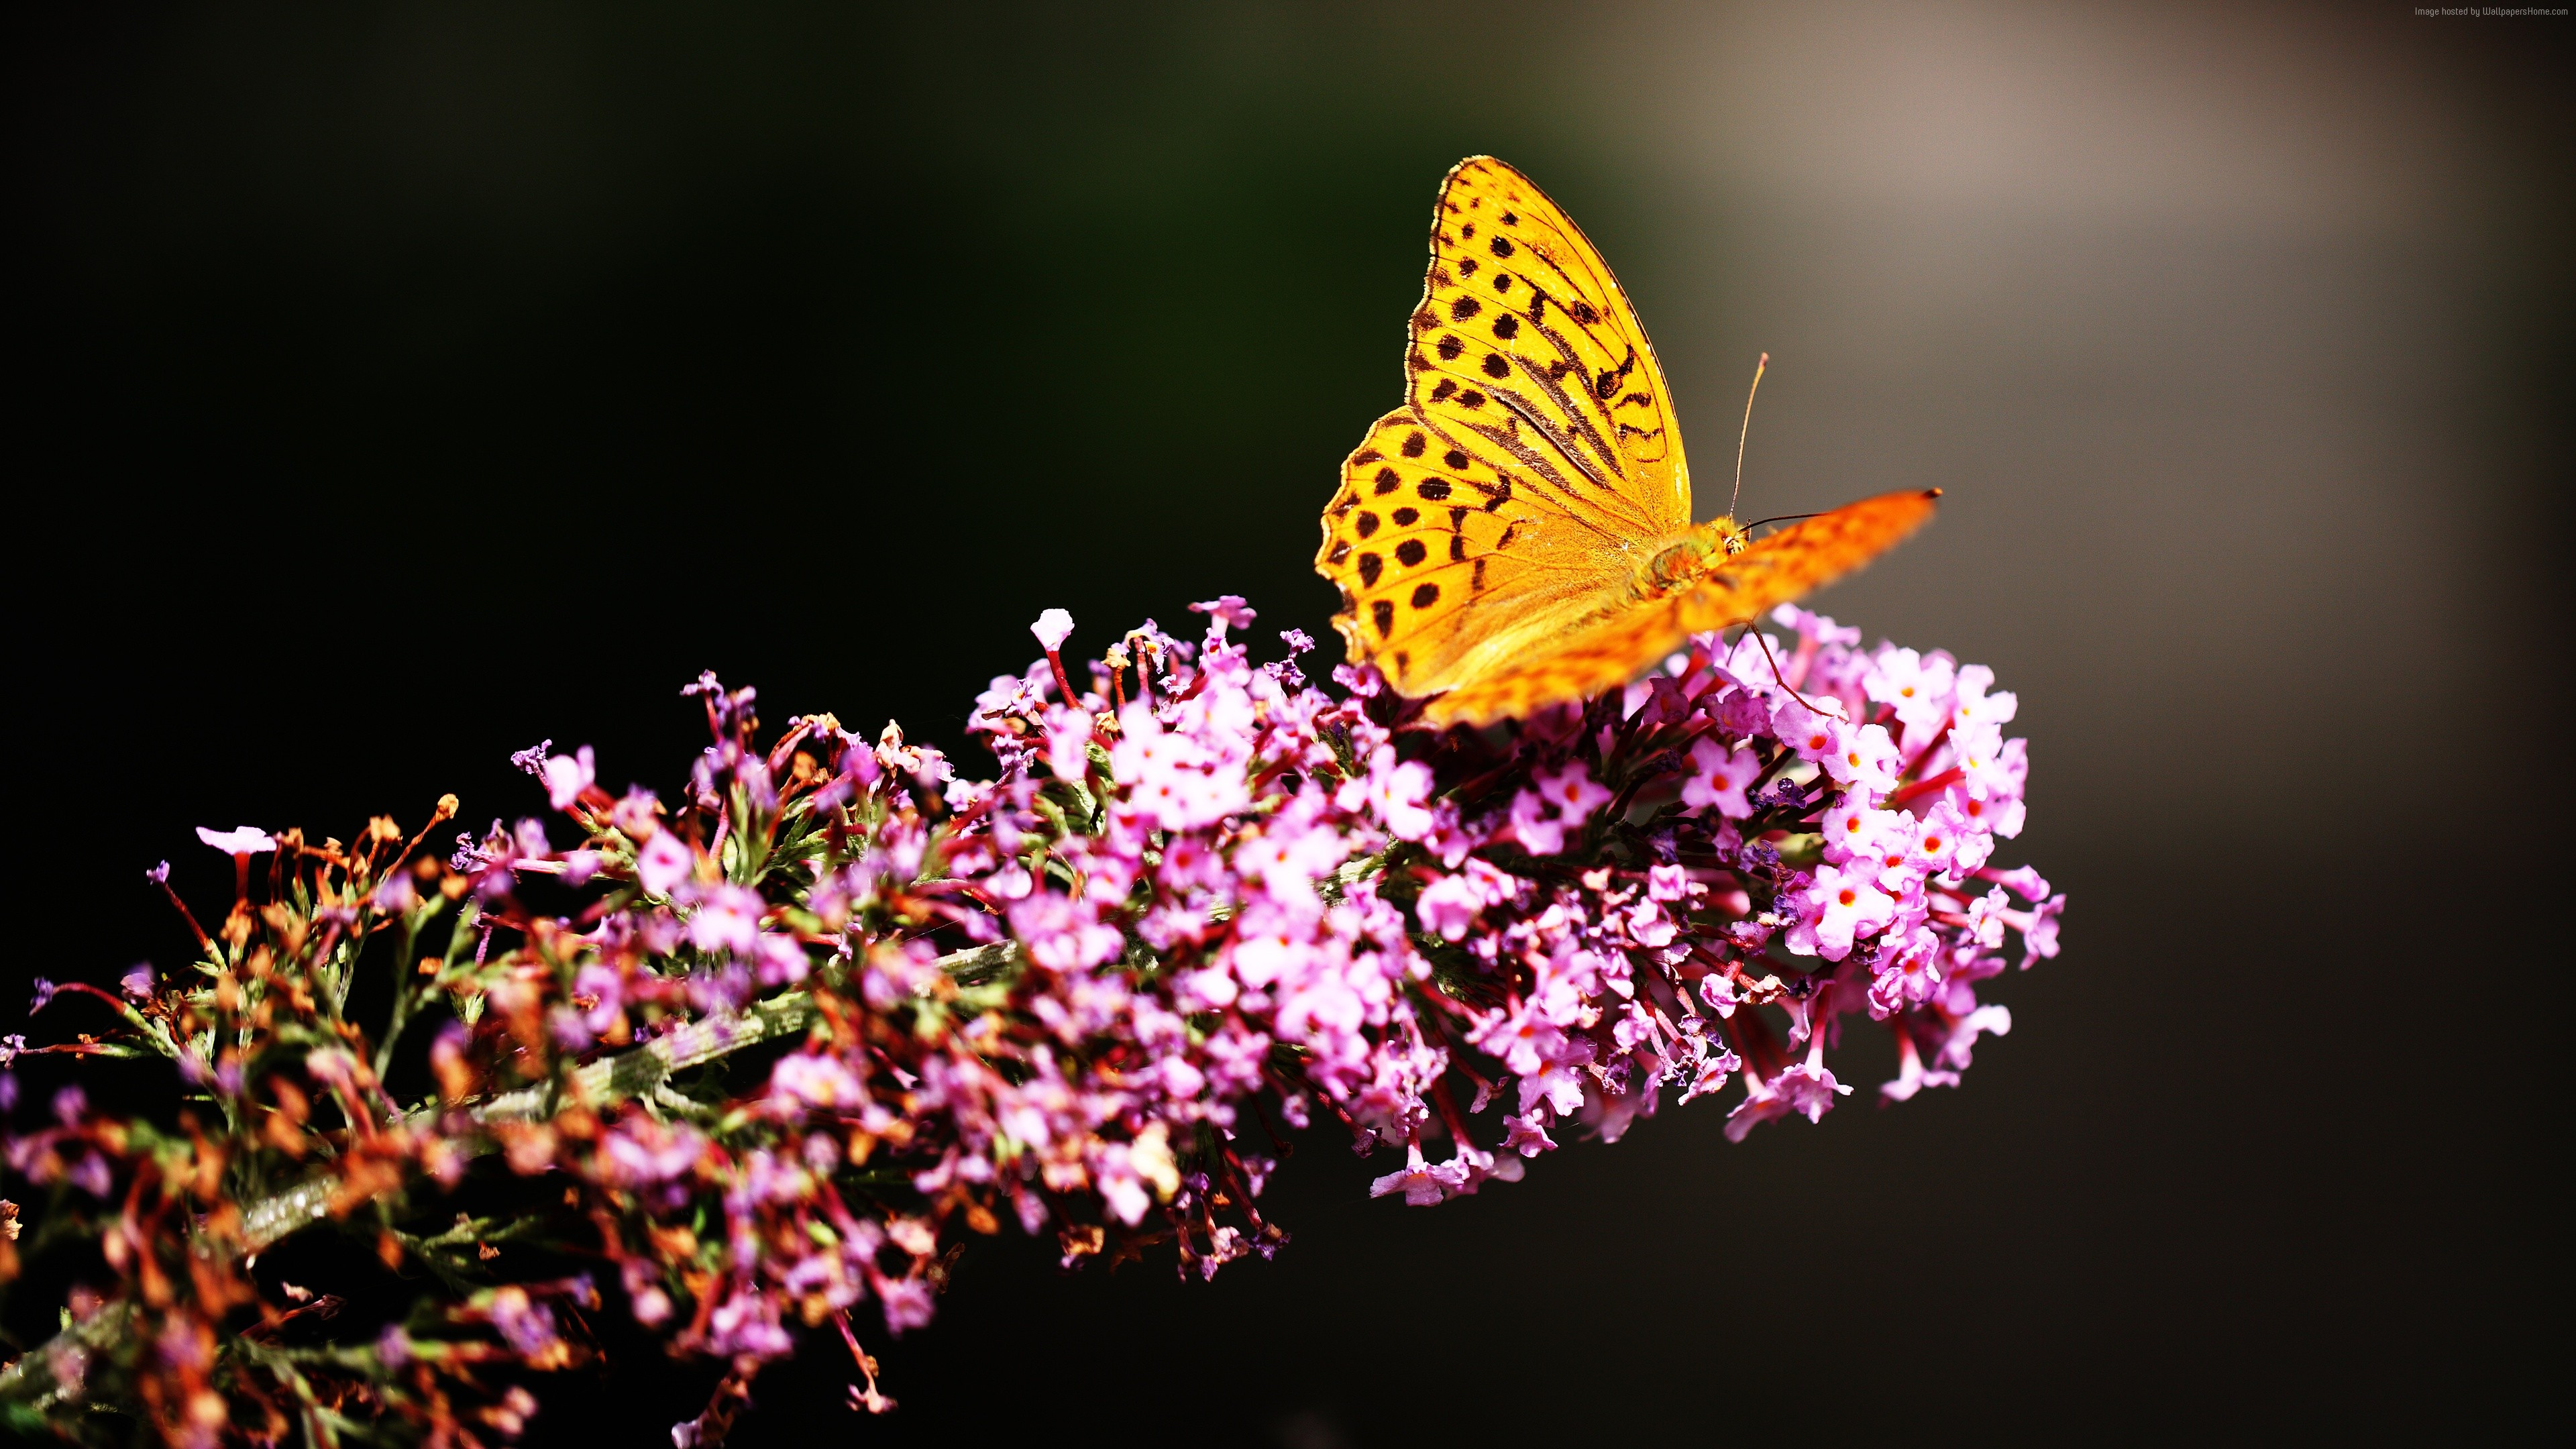 Wallpaper Butterfly, insects, flowers, Glass, nature, garden, Animals